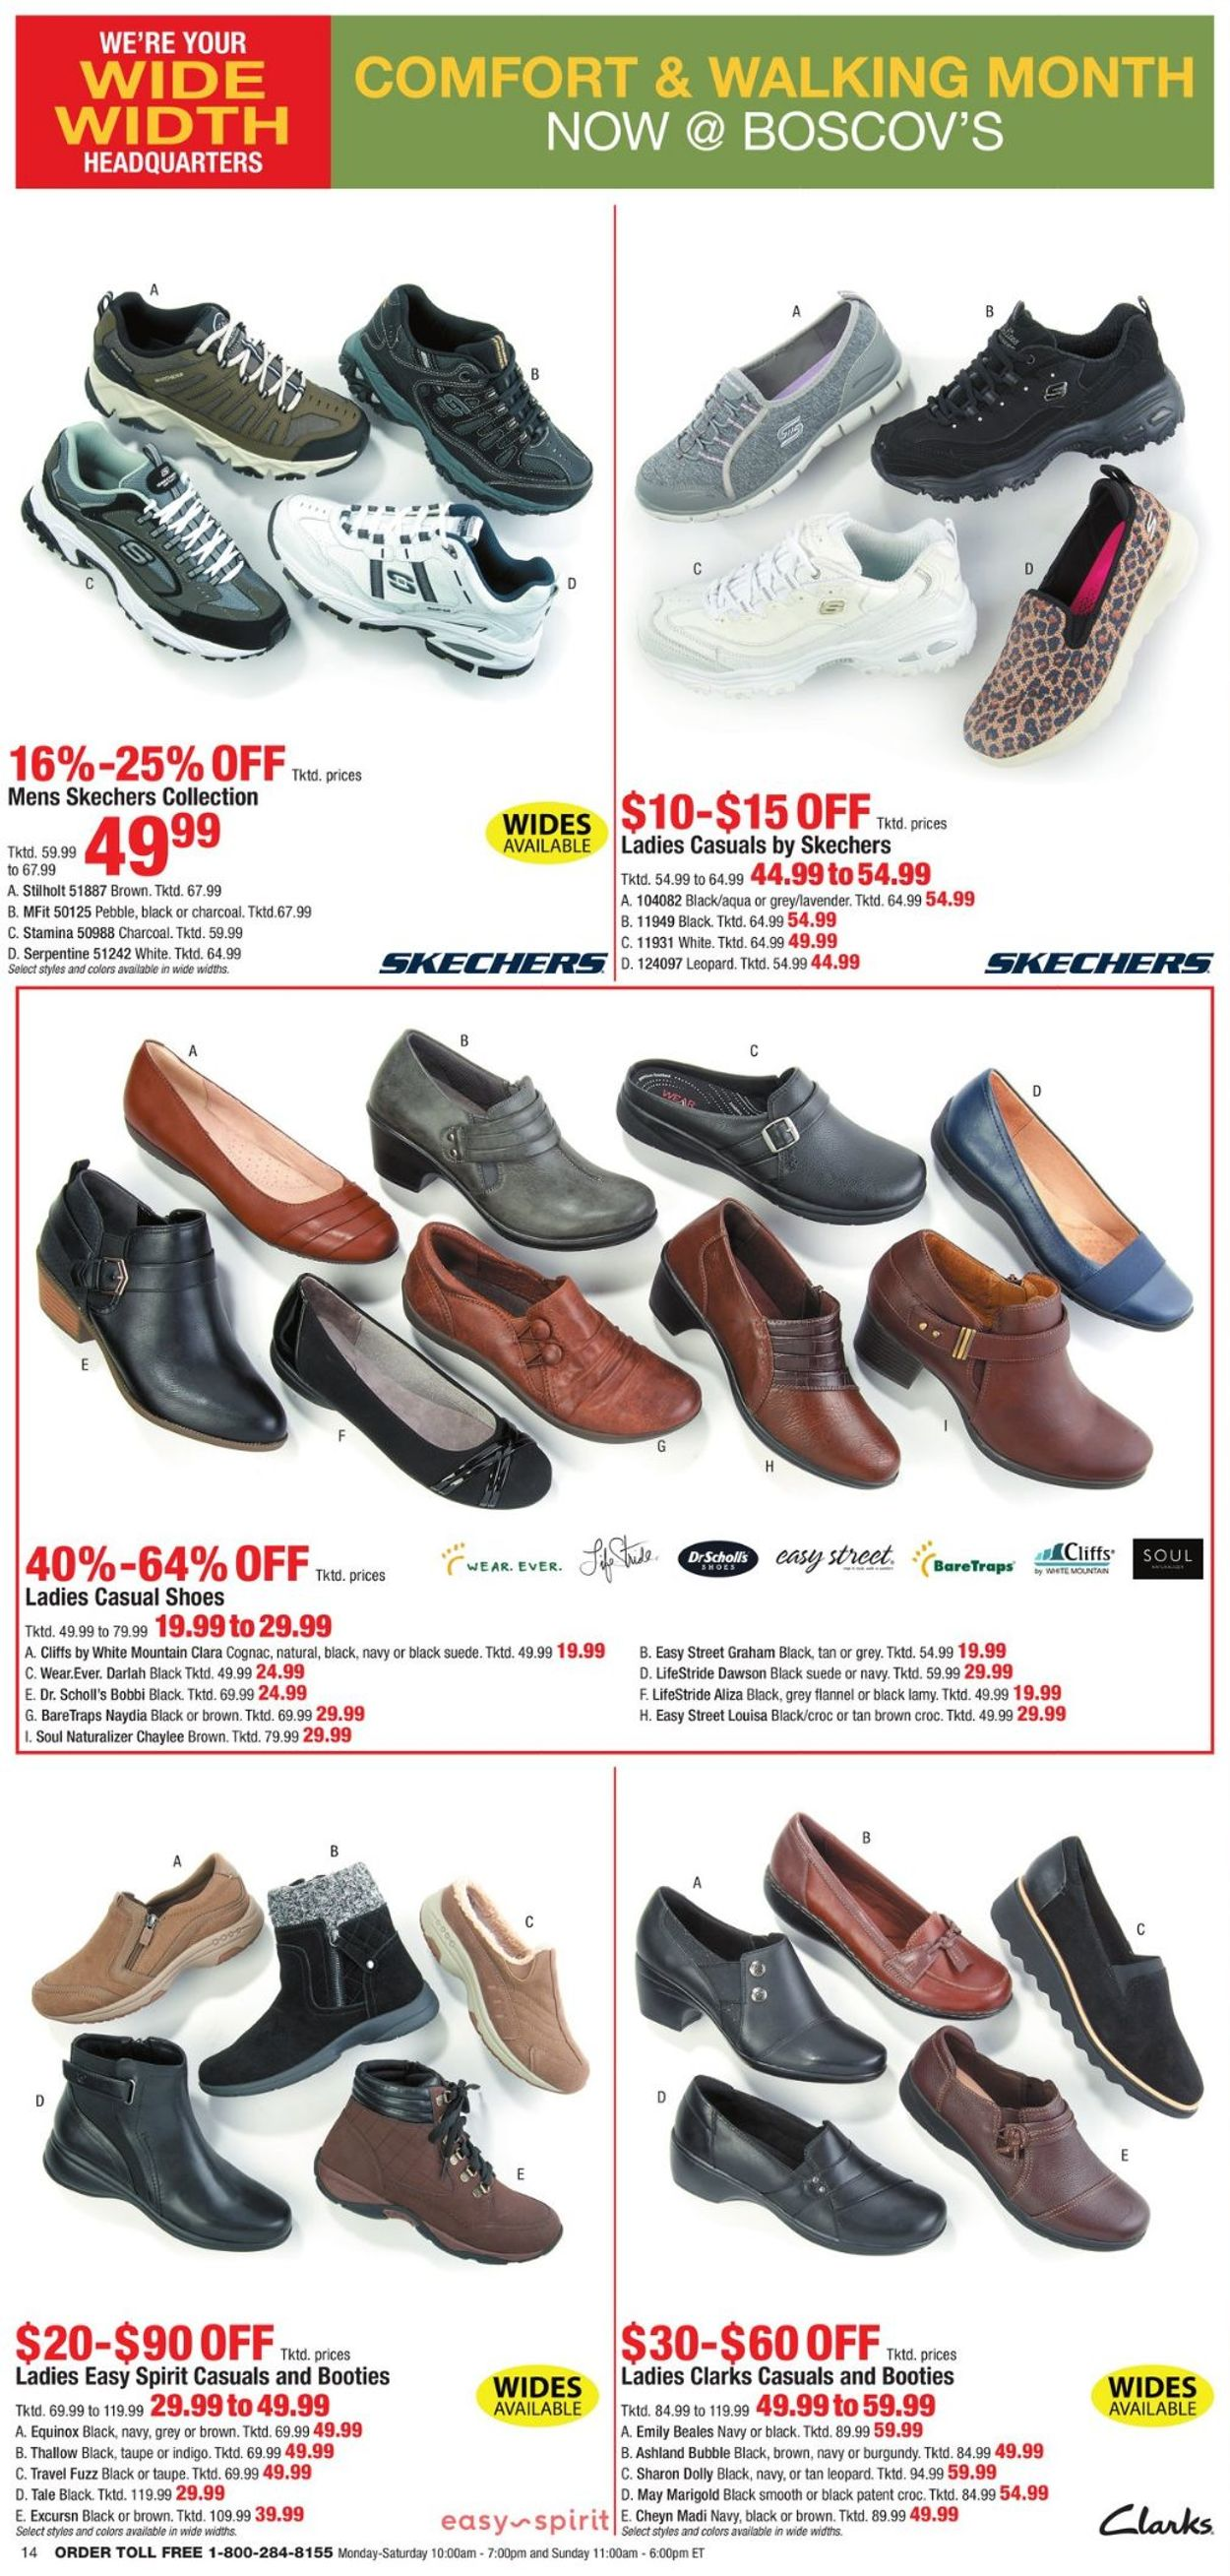 Boscov's Current weekly ad 10/25 - 10